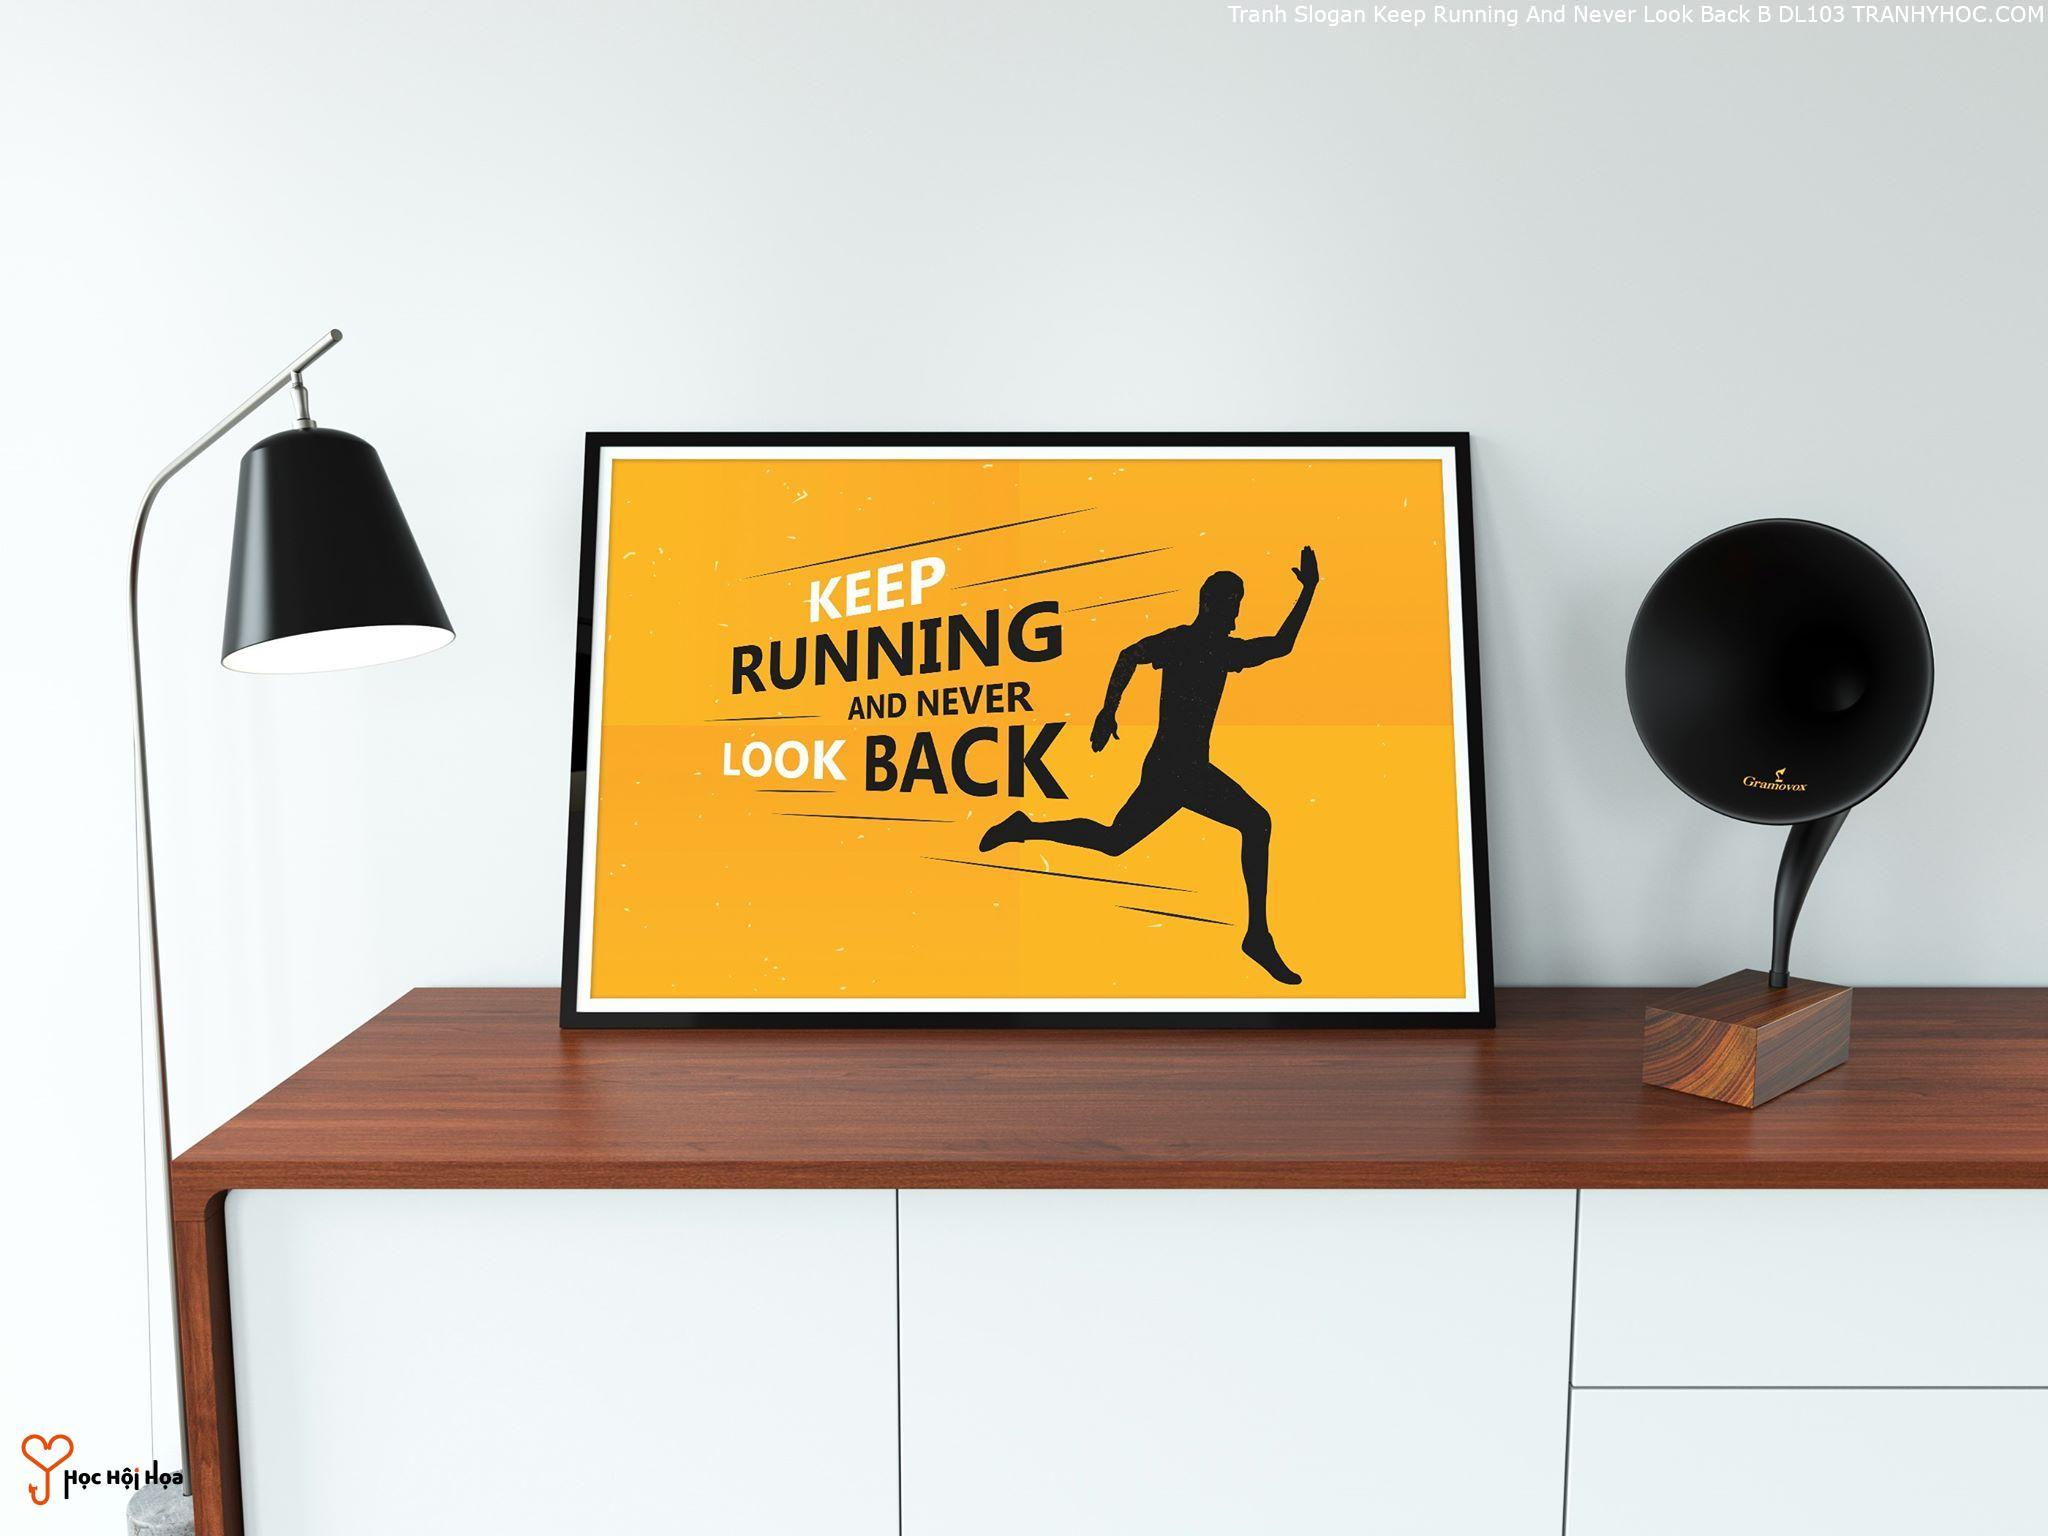 Tranh Slogan Keep Running And Never Look Back B DL103